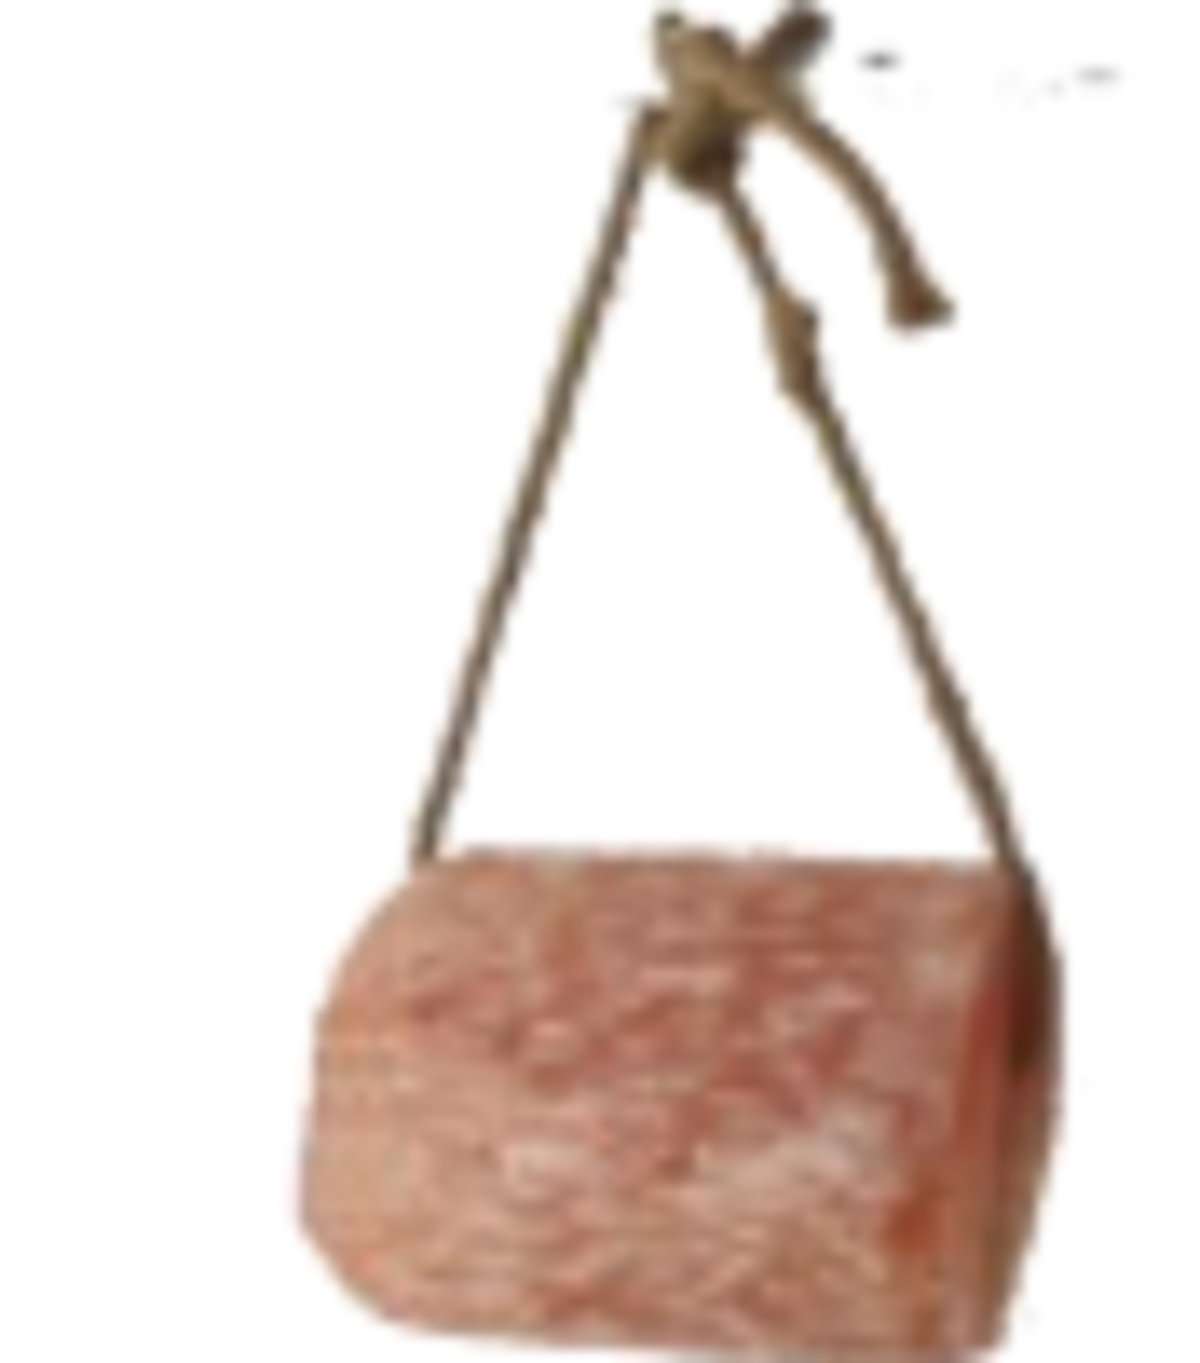 SUMBAL Salt  ANIMAL LICK SALT(1-2Kg)  ZRS 0679